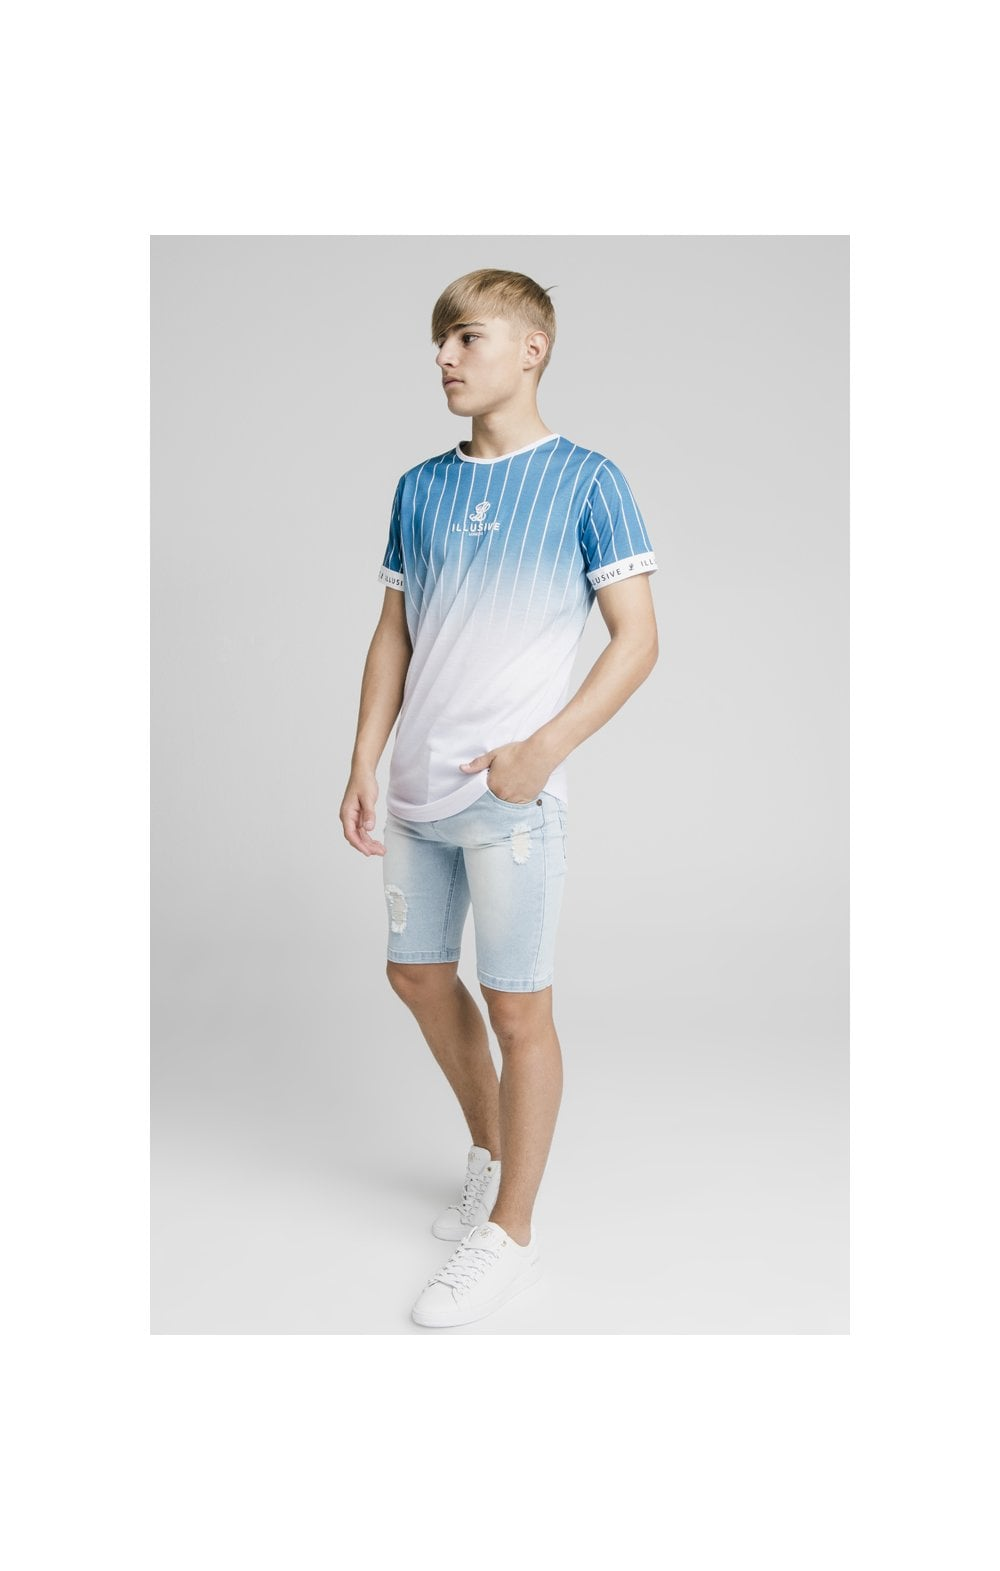 Illusive London Distressed Denim Shorts - Light Blue (6)